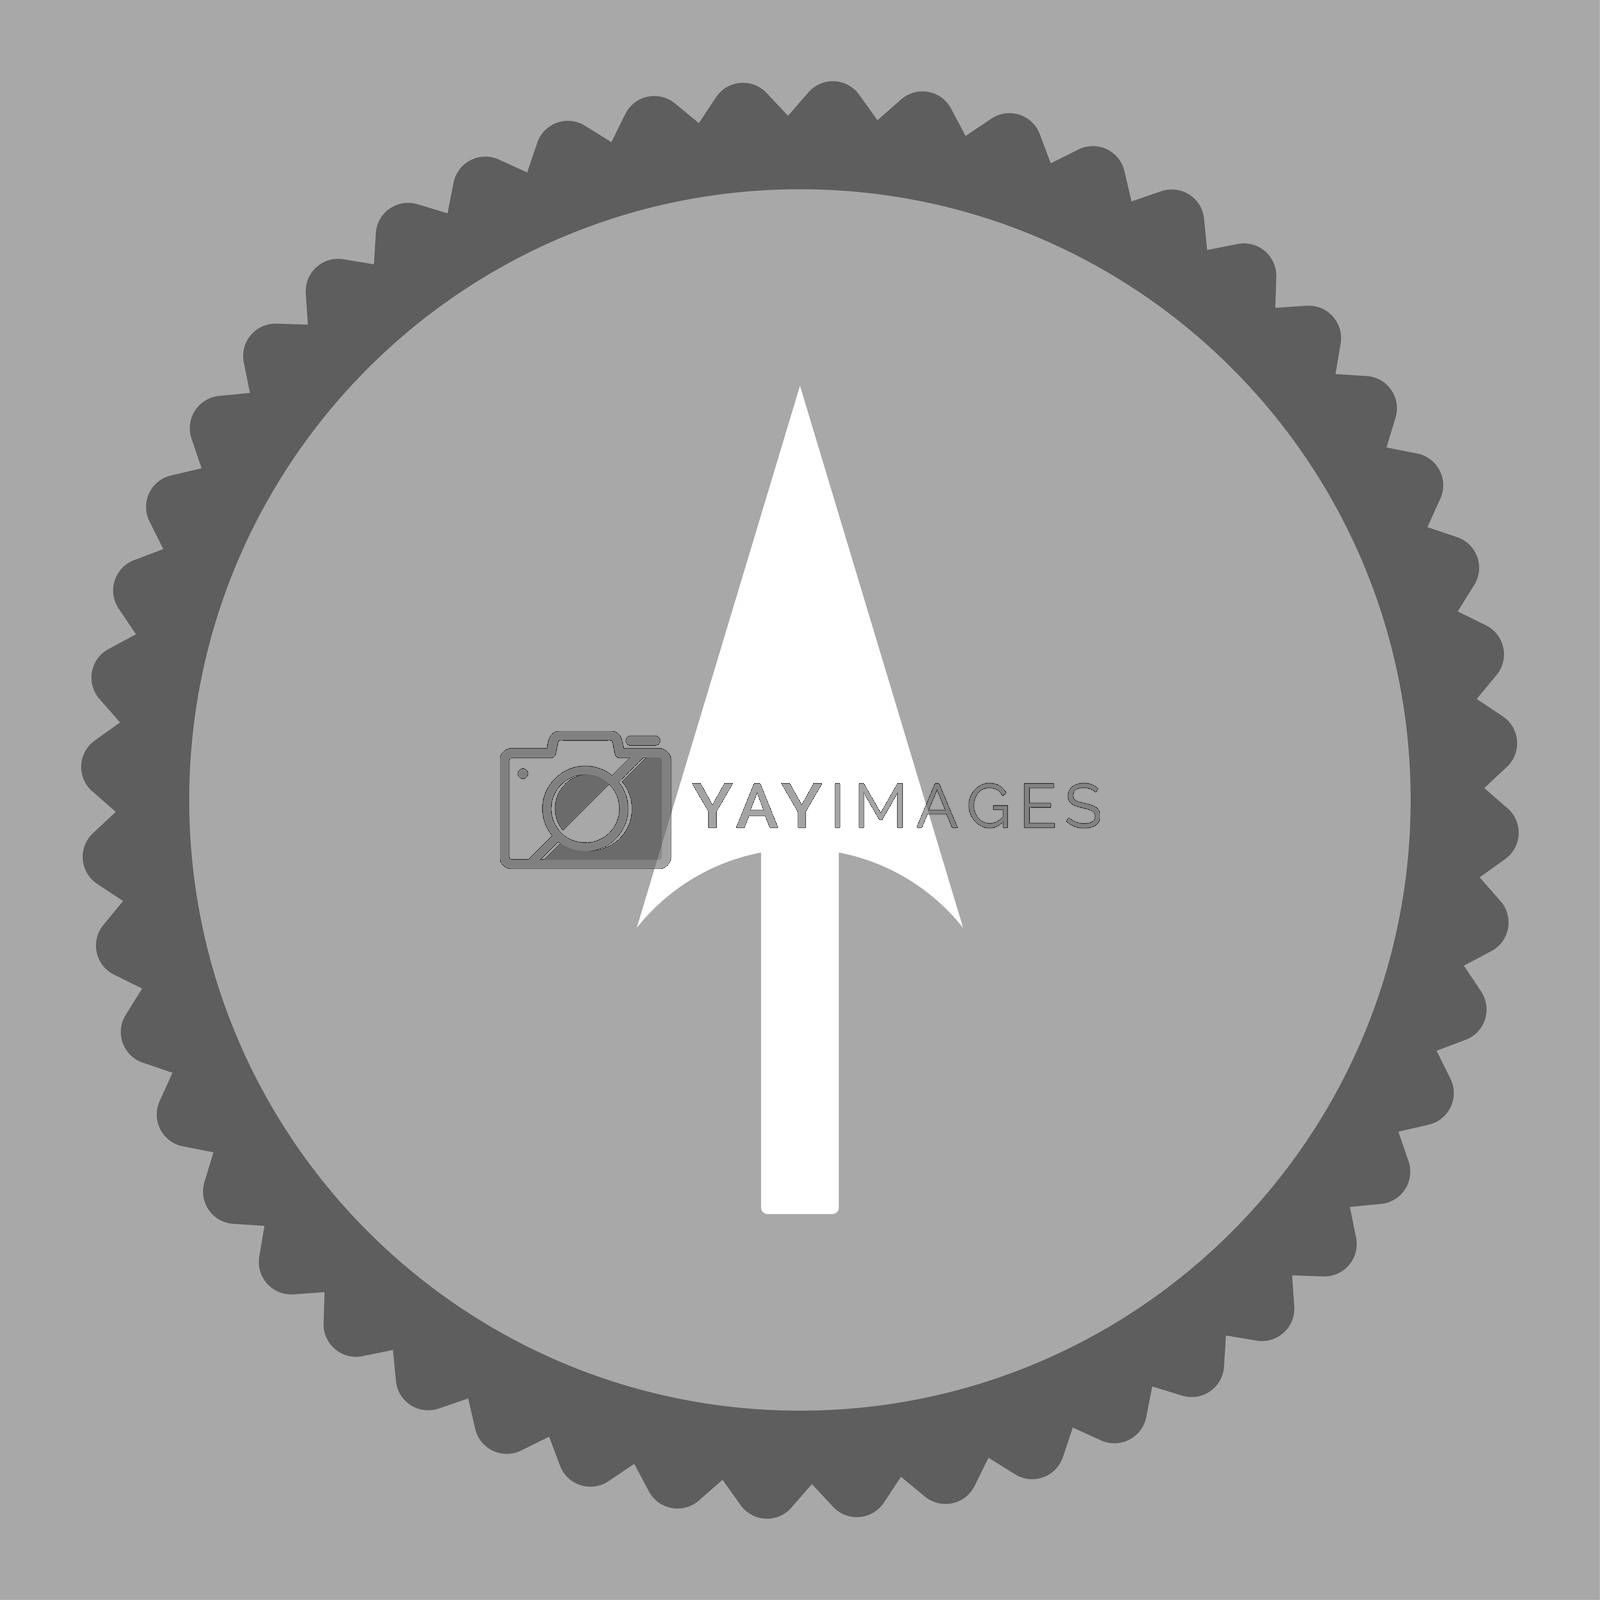 Arrow Axis Y flat dark gray and white colors round stamp icon by Aha-Soft